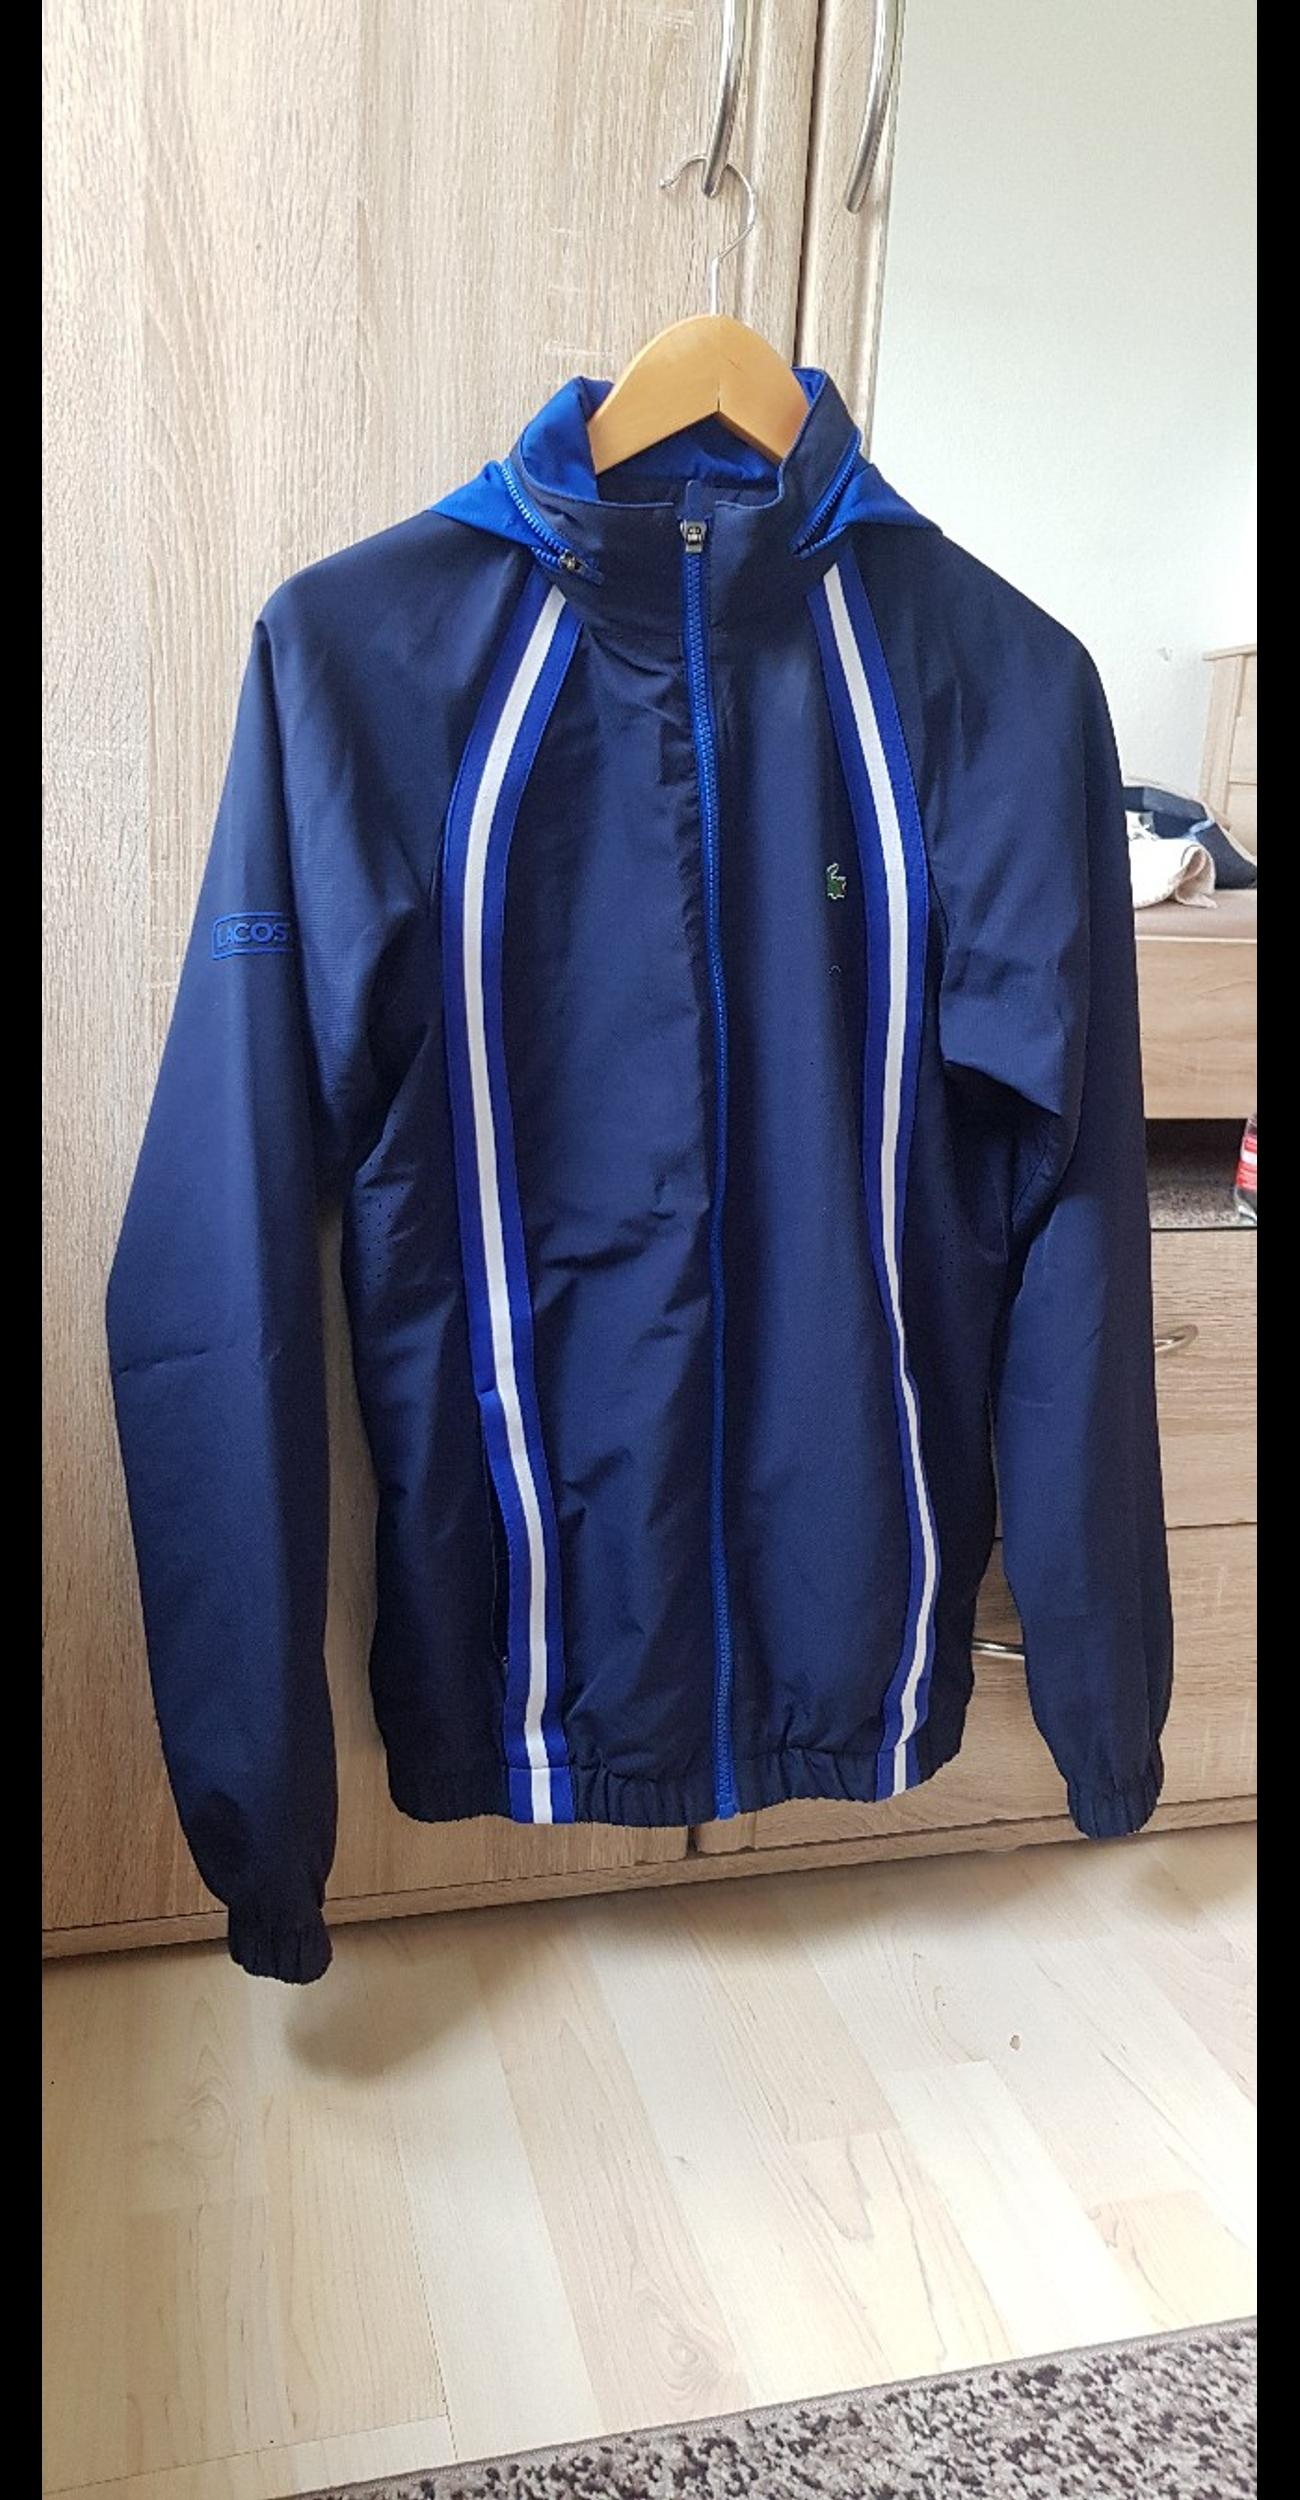 For 13583 Lacoste Xs Jacke Berlin Sale Herren €69 In 99 rhstQd